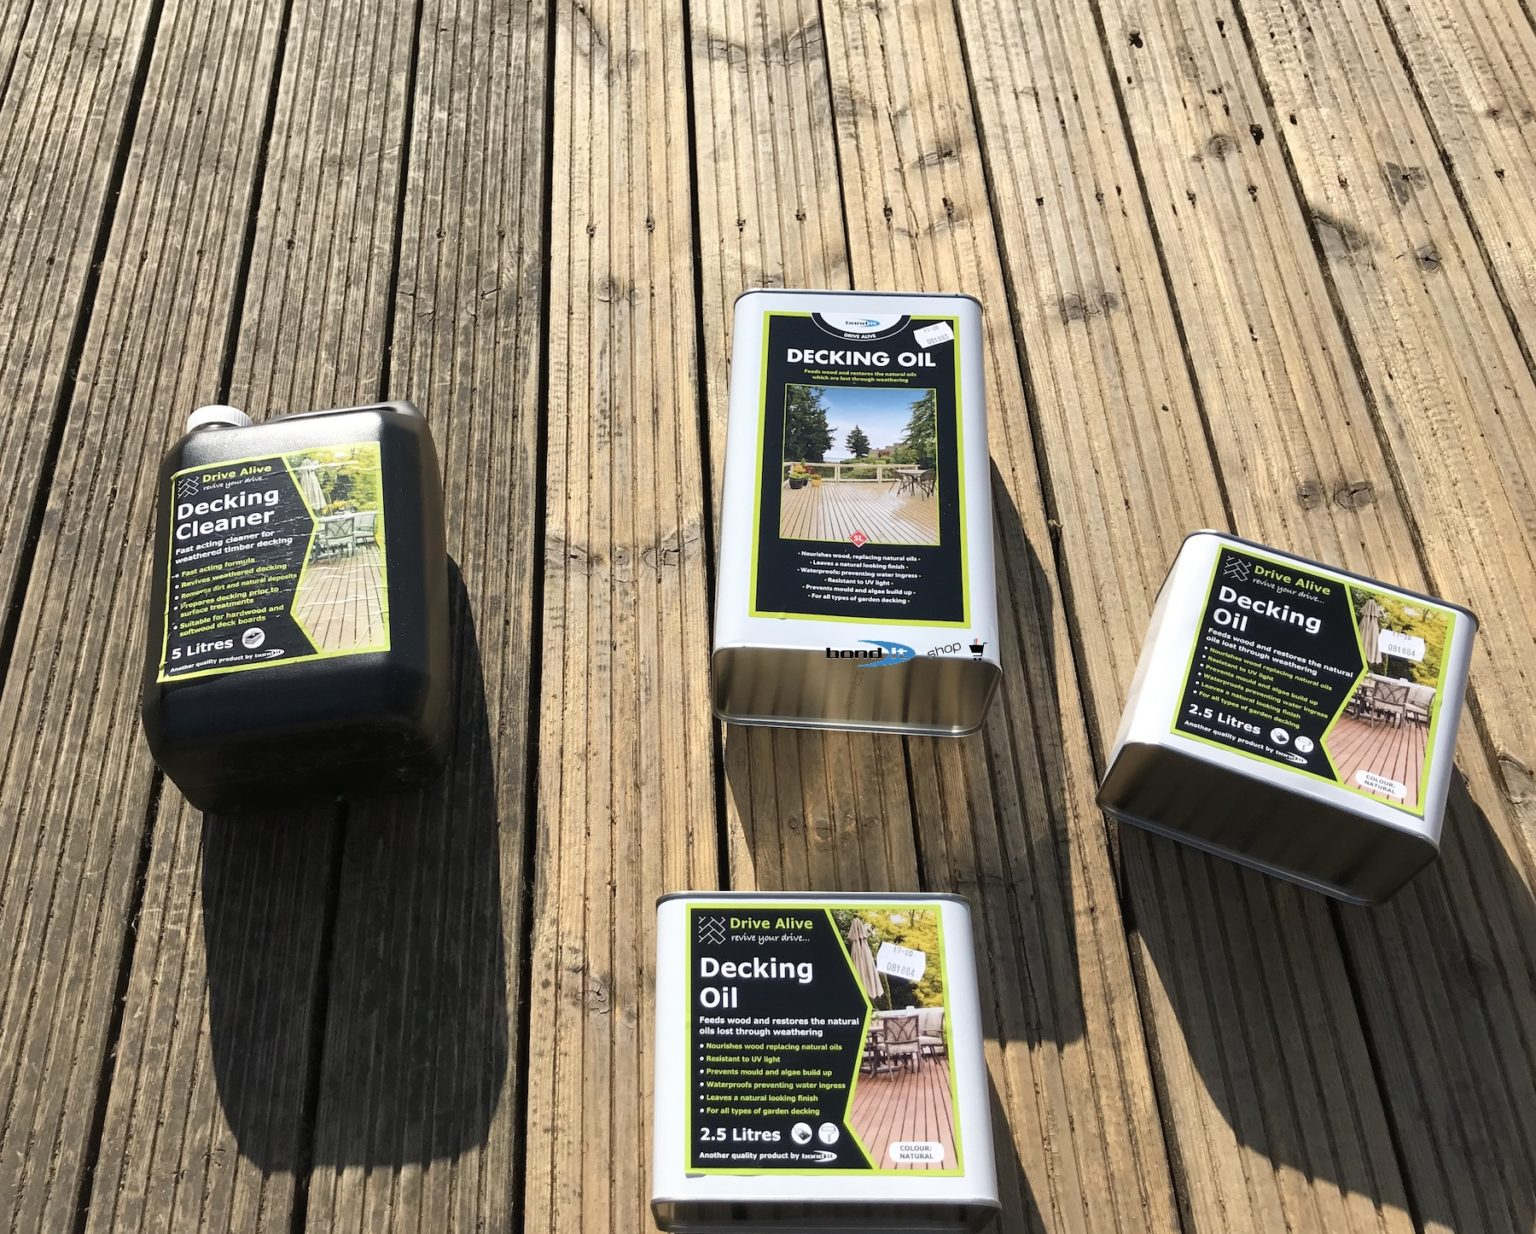 Decking Revival with Deck Cleaner & Oil